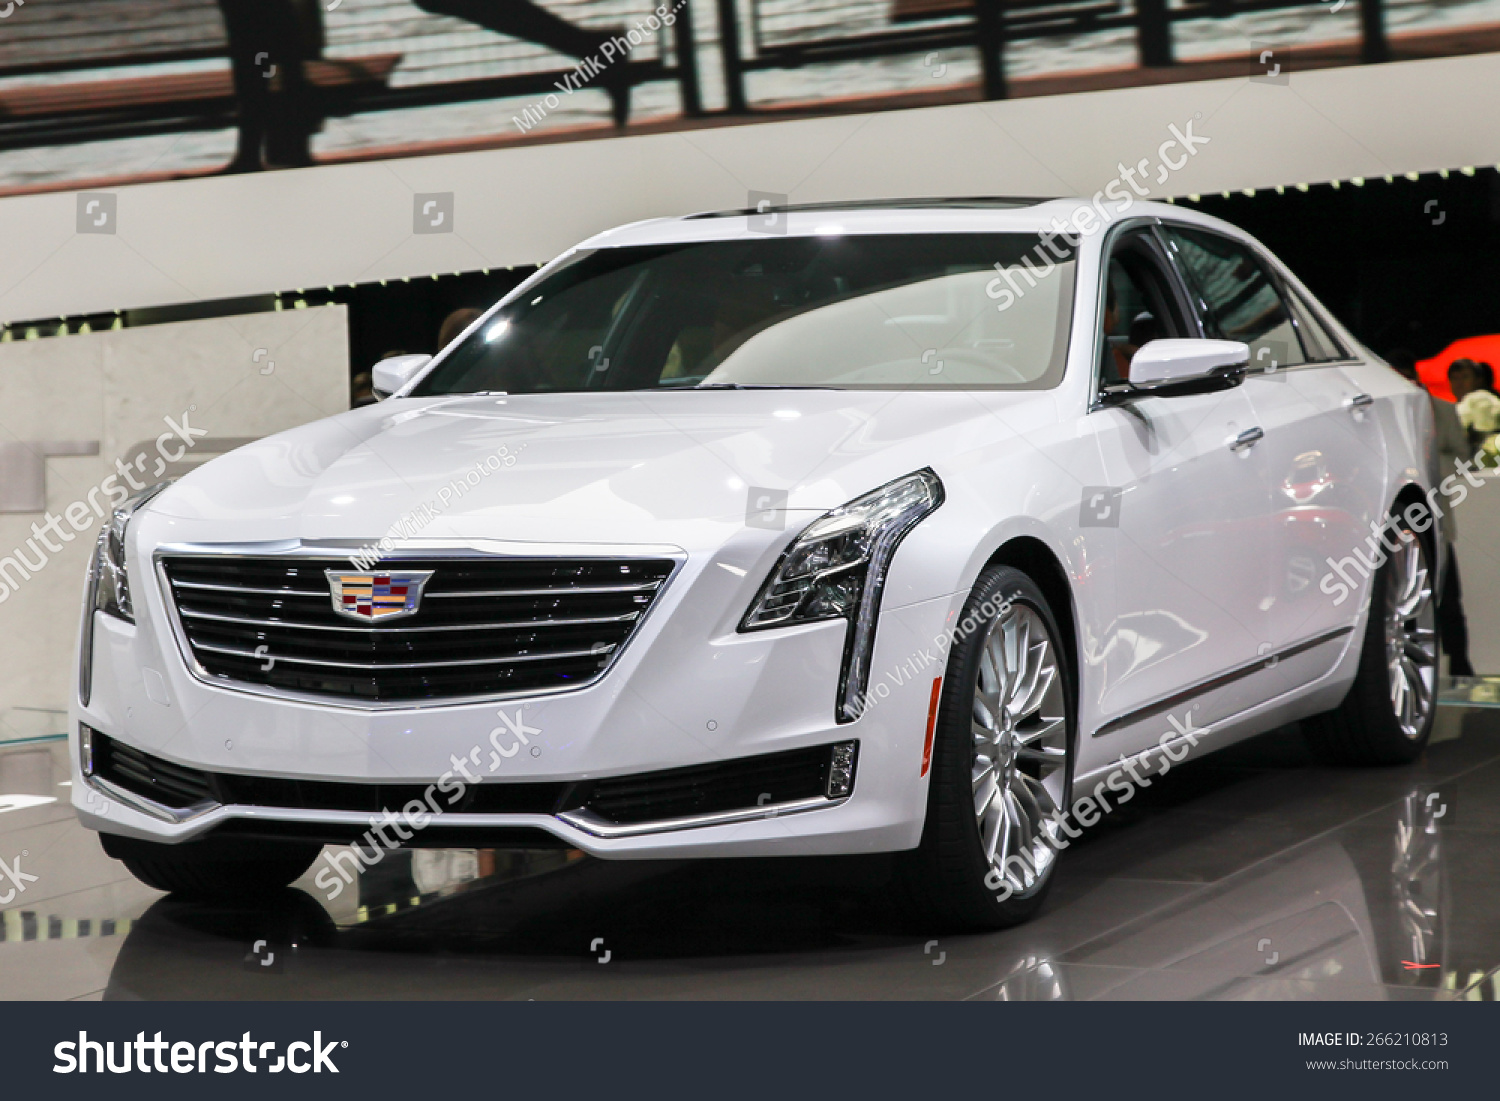 new york april 1 cadillac exhibit cadillac ct 6 at the. Black Bedroom Furniture Sets. Home Design Ideas